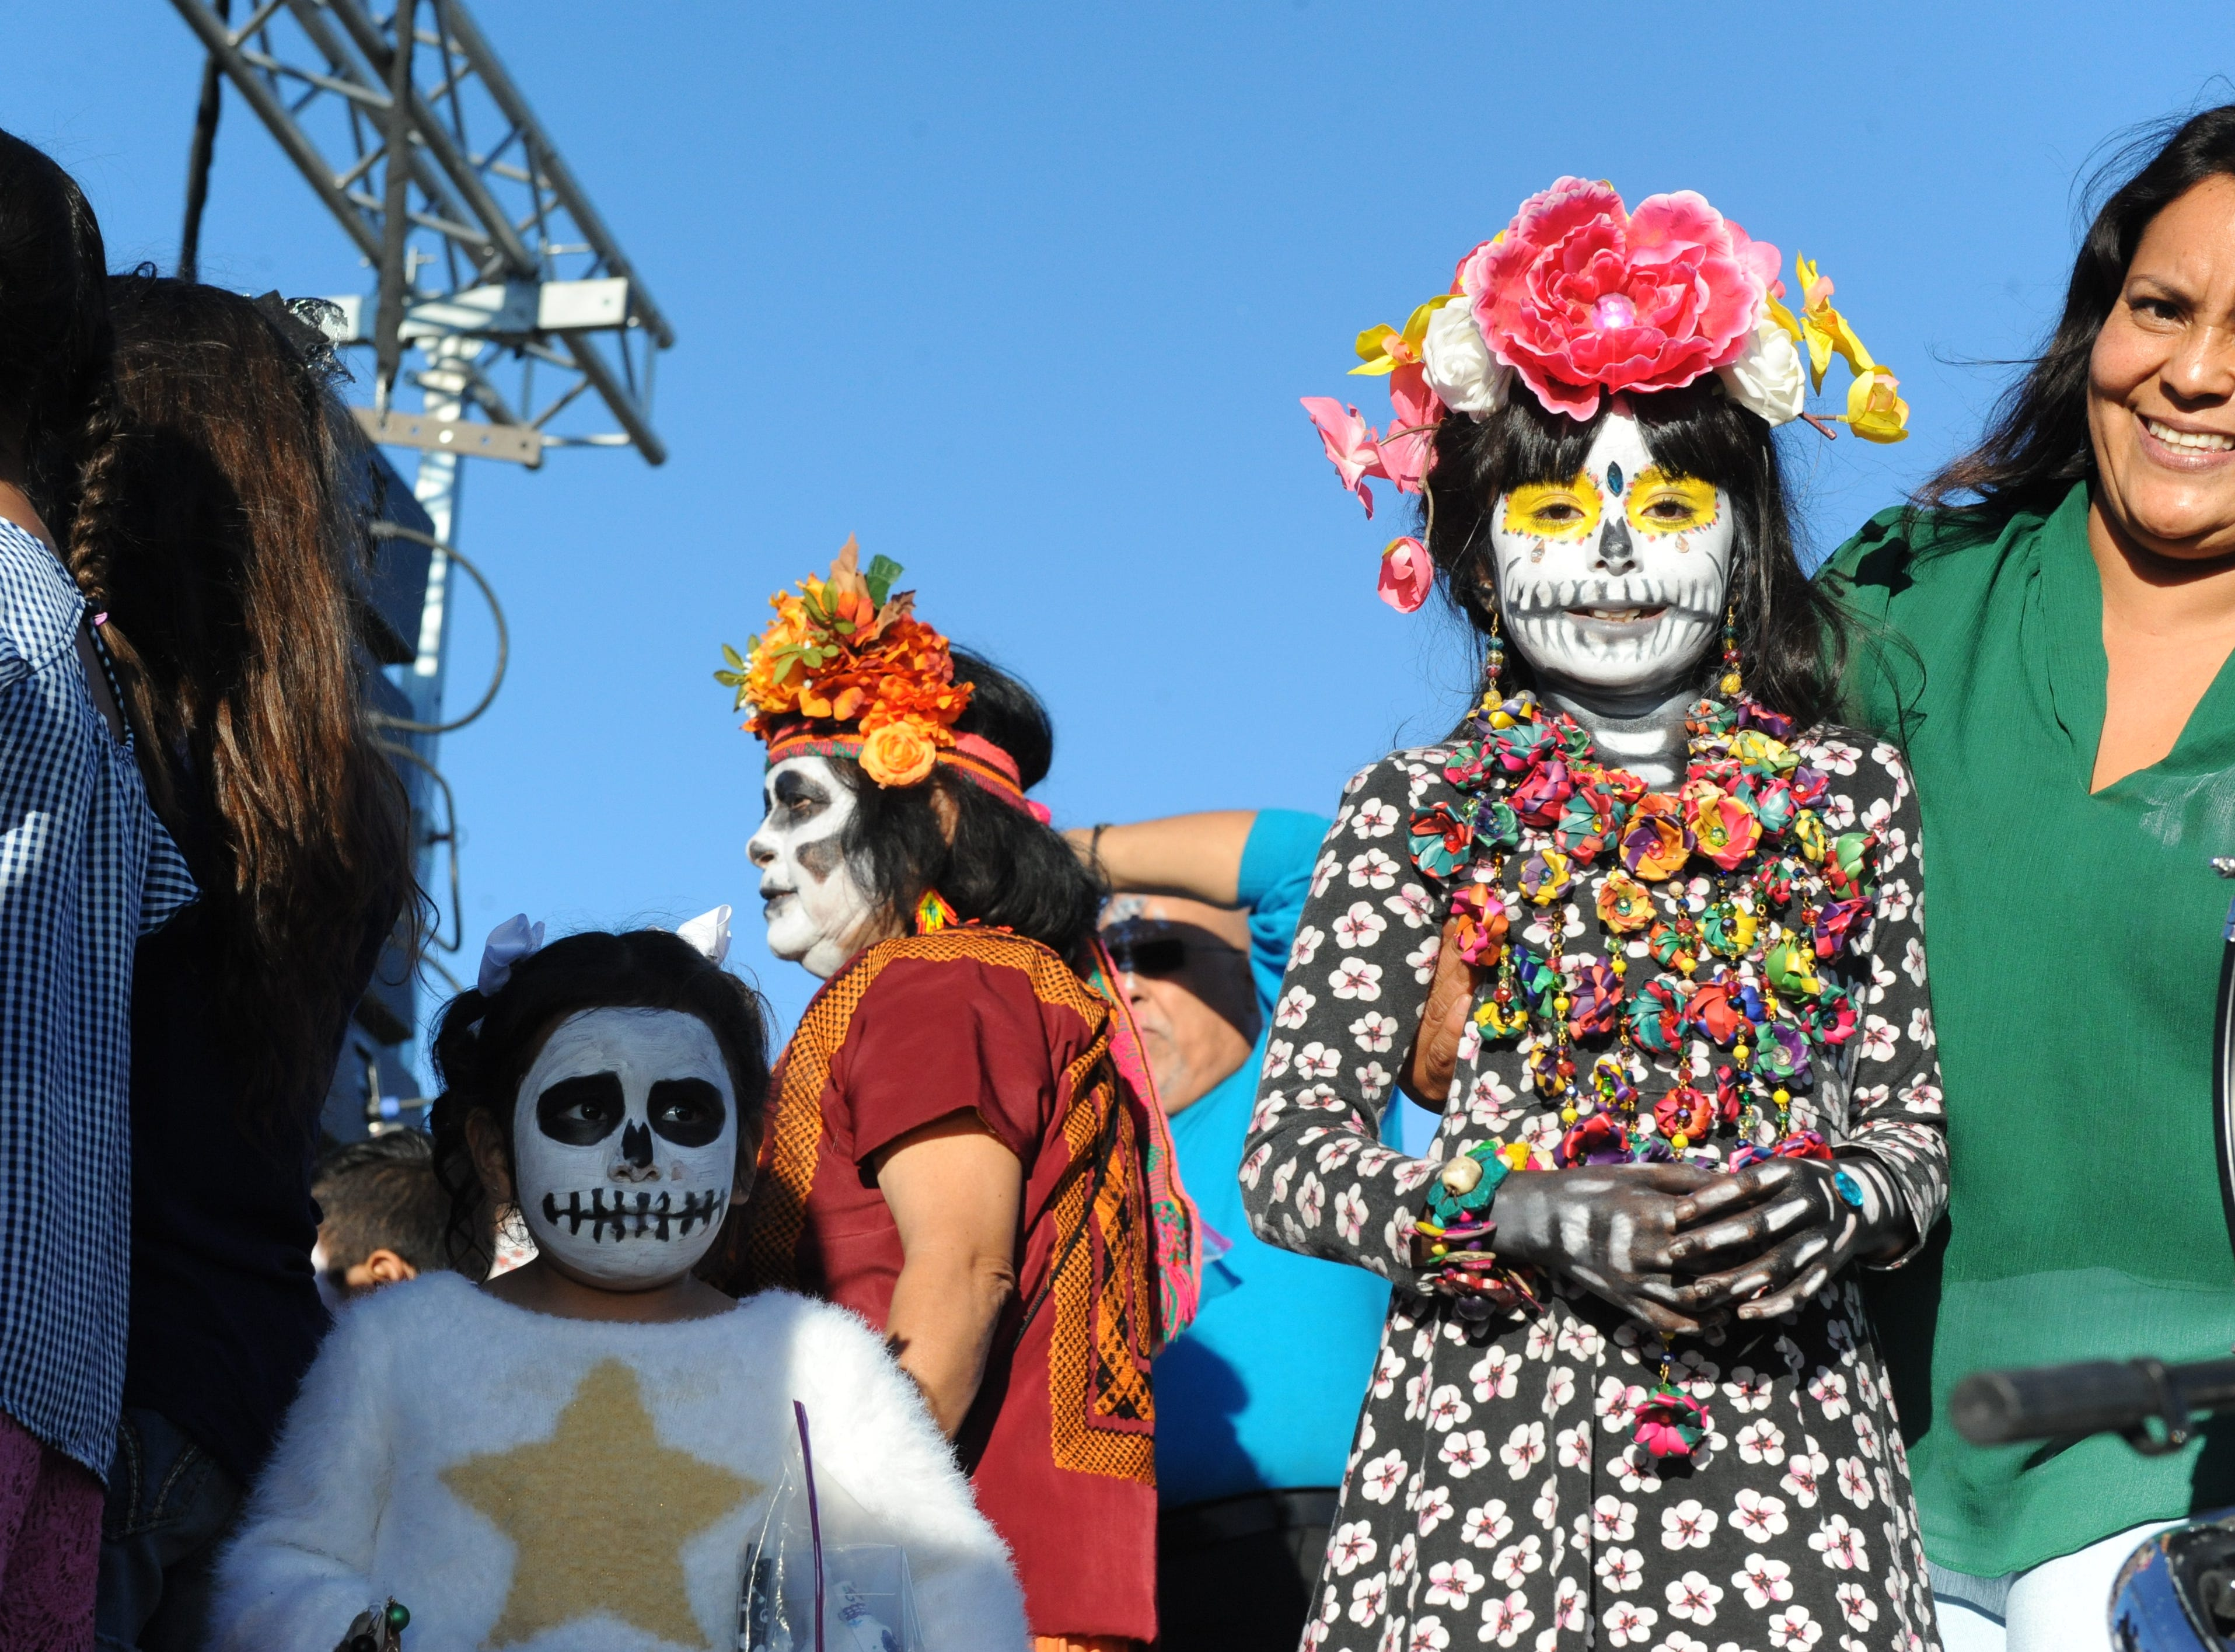 """Angela Ocegueda, wearing flowers and in face paint, was the winner of the Día de los Muertos' La Calavera Catrina, or """"The Elegant Skeleton,"""" contest in Salinas on Sunday."""